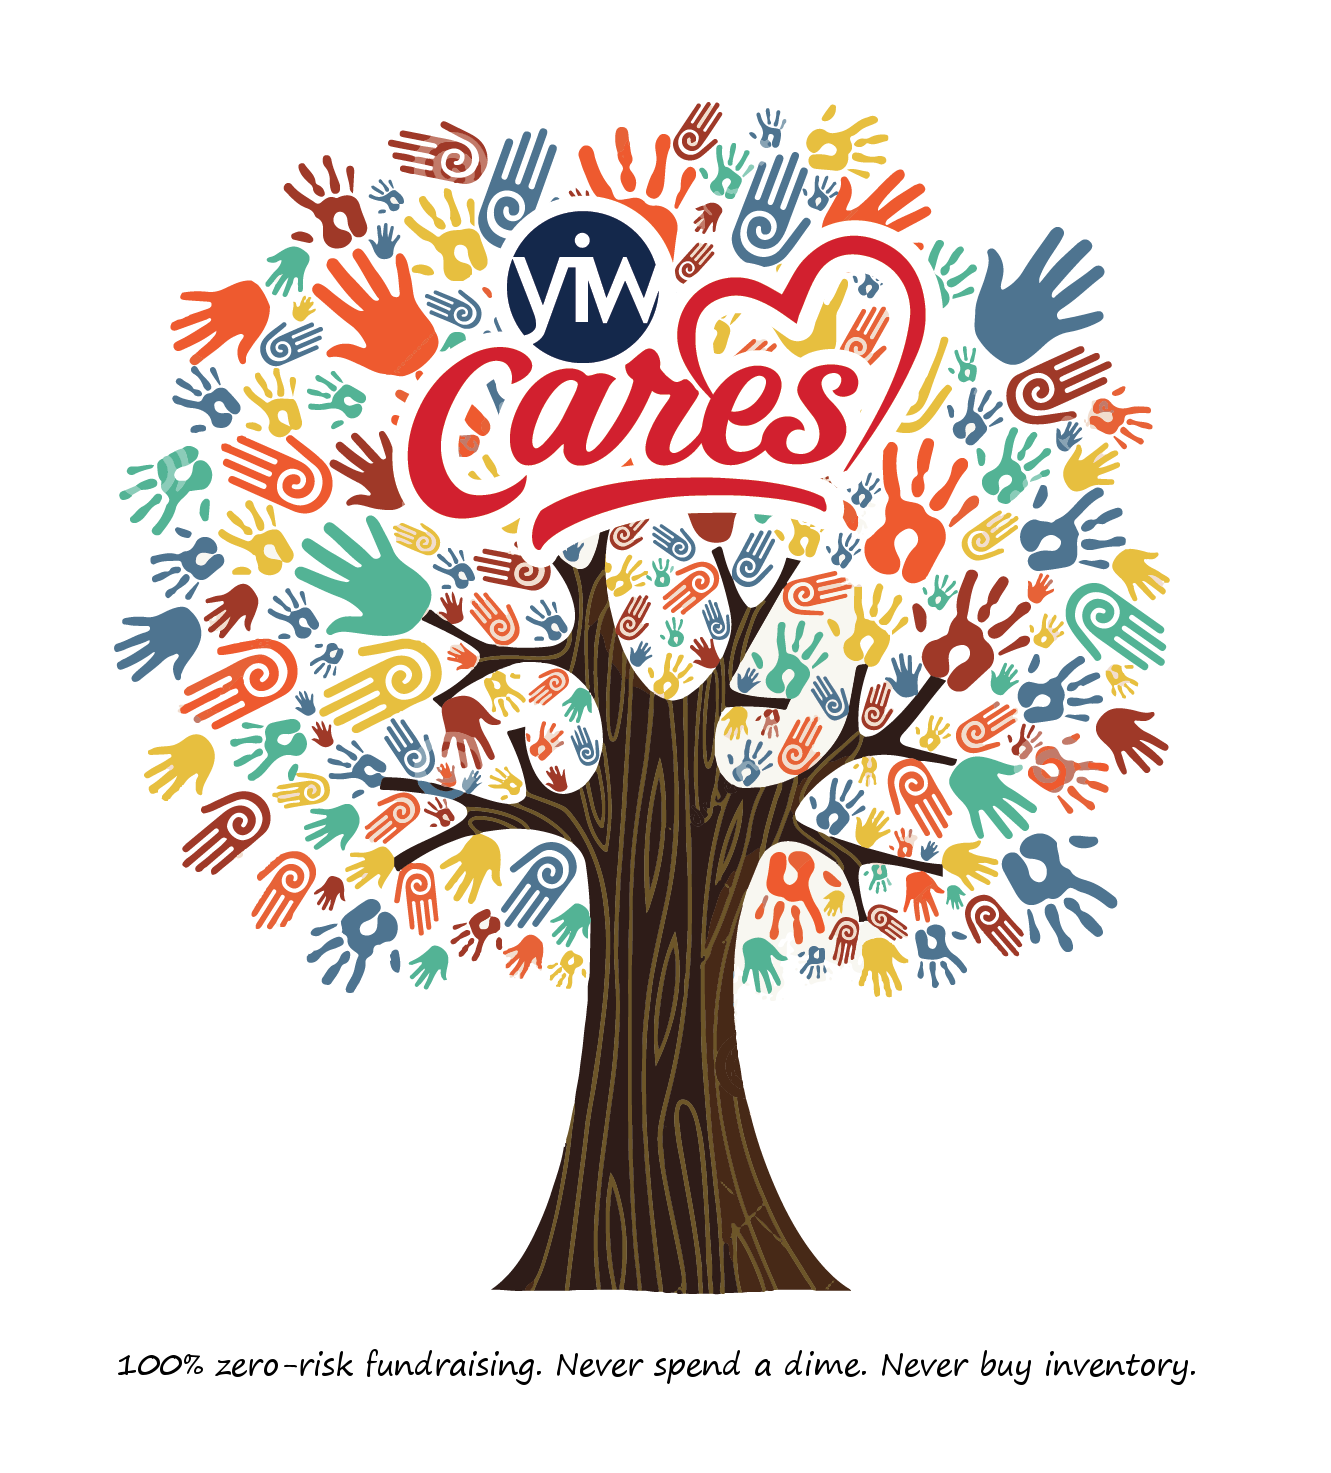 Diversity tree clipart png transparent library YIW-Cares - Your Image Works, Inc. png transparent library